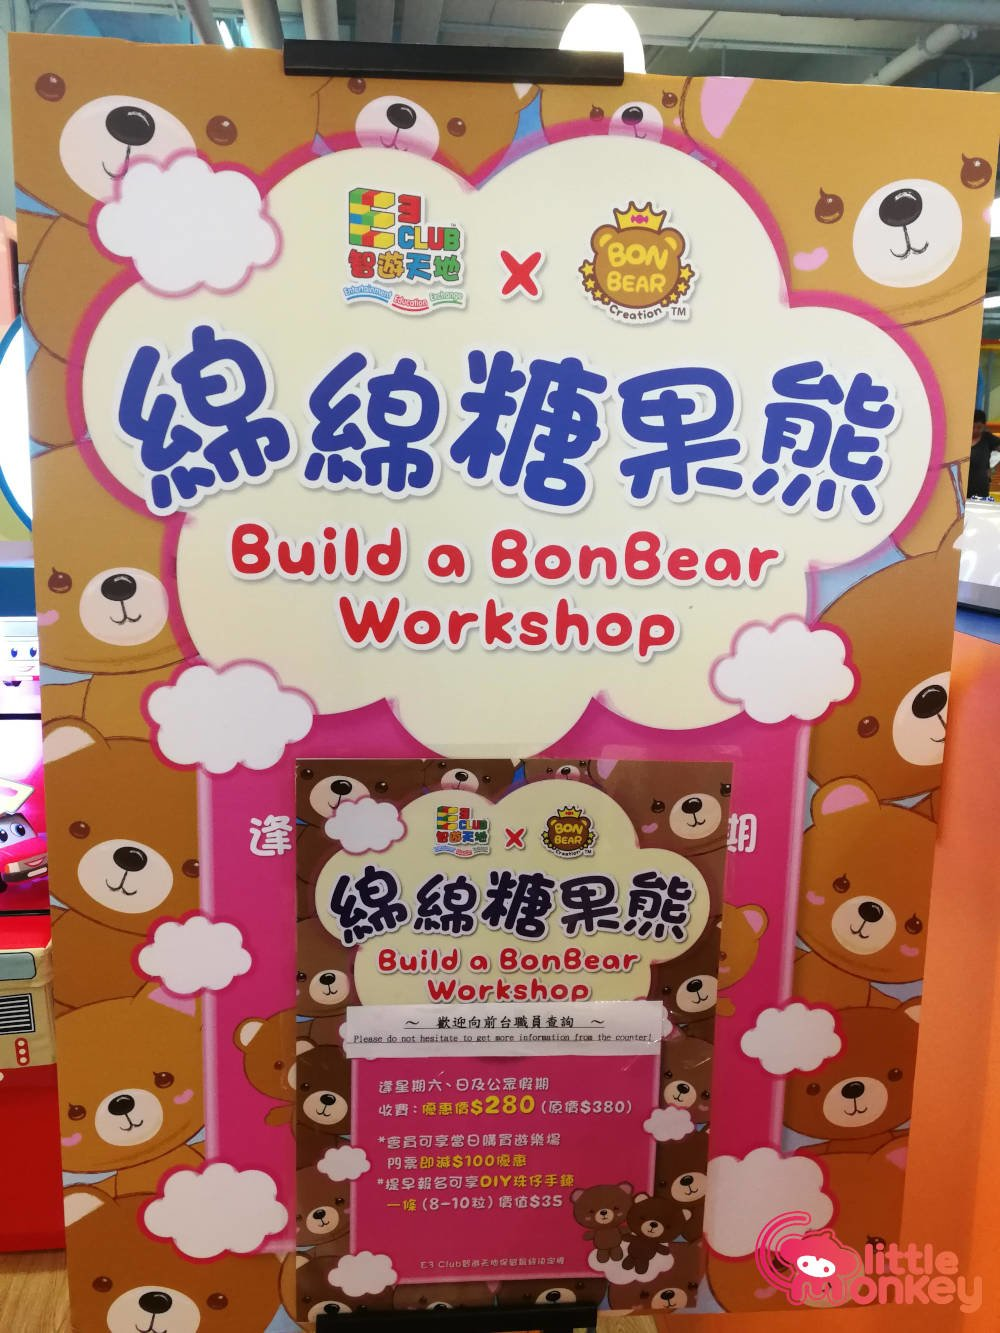 E3 Club's BonBear Workshop in iSquare